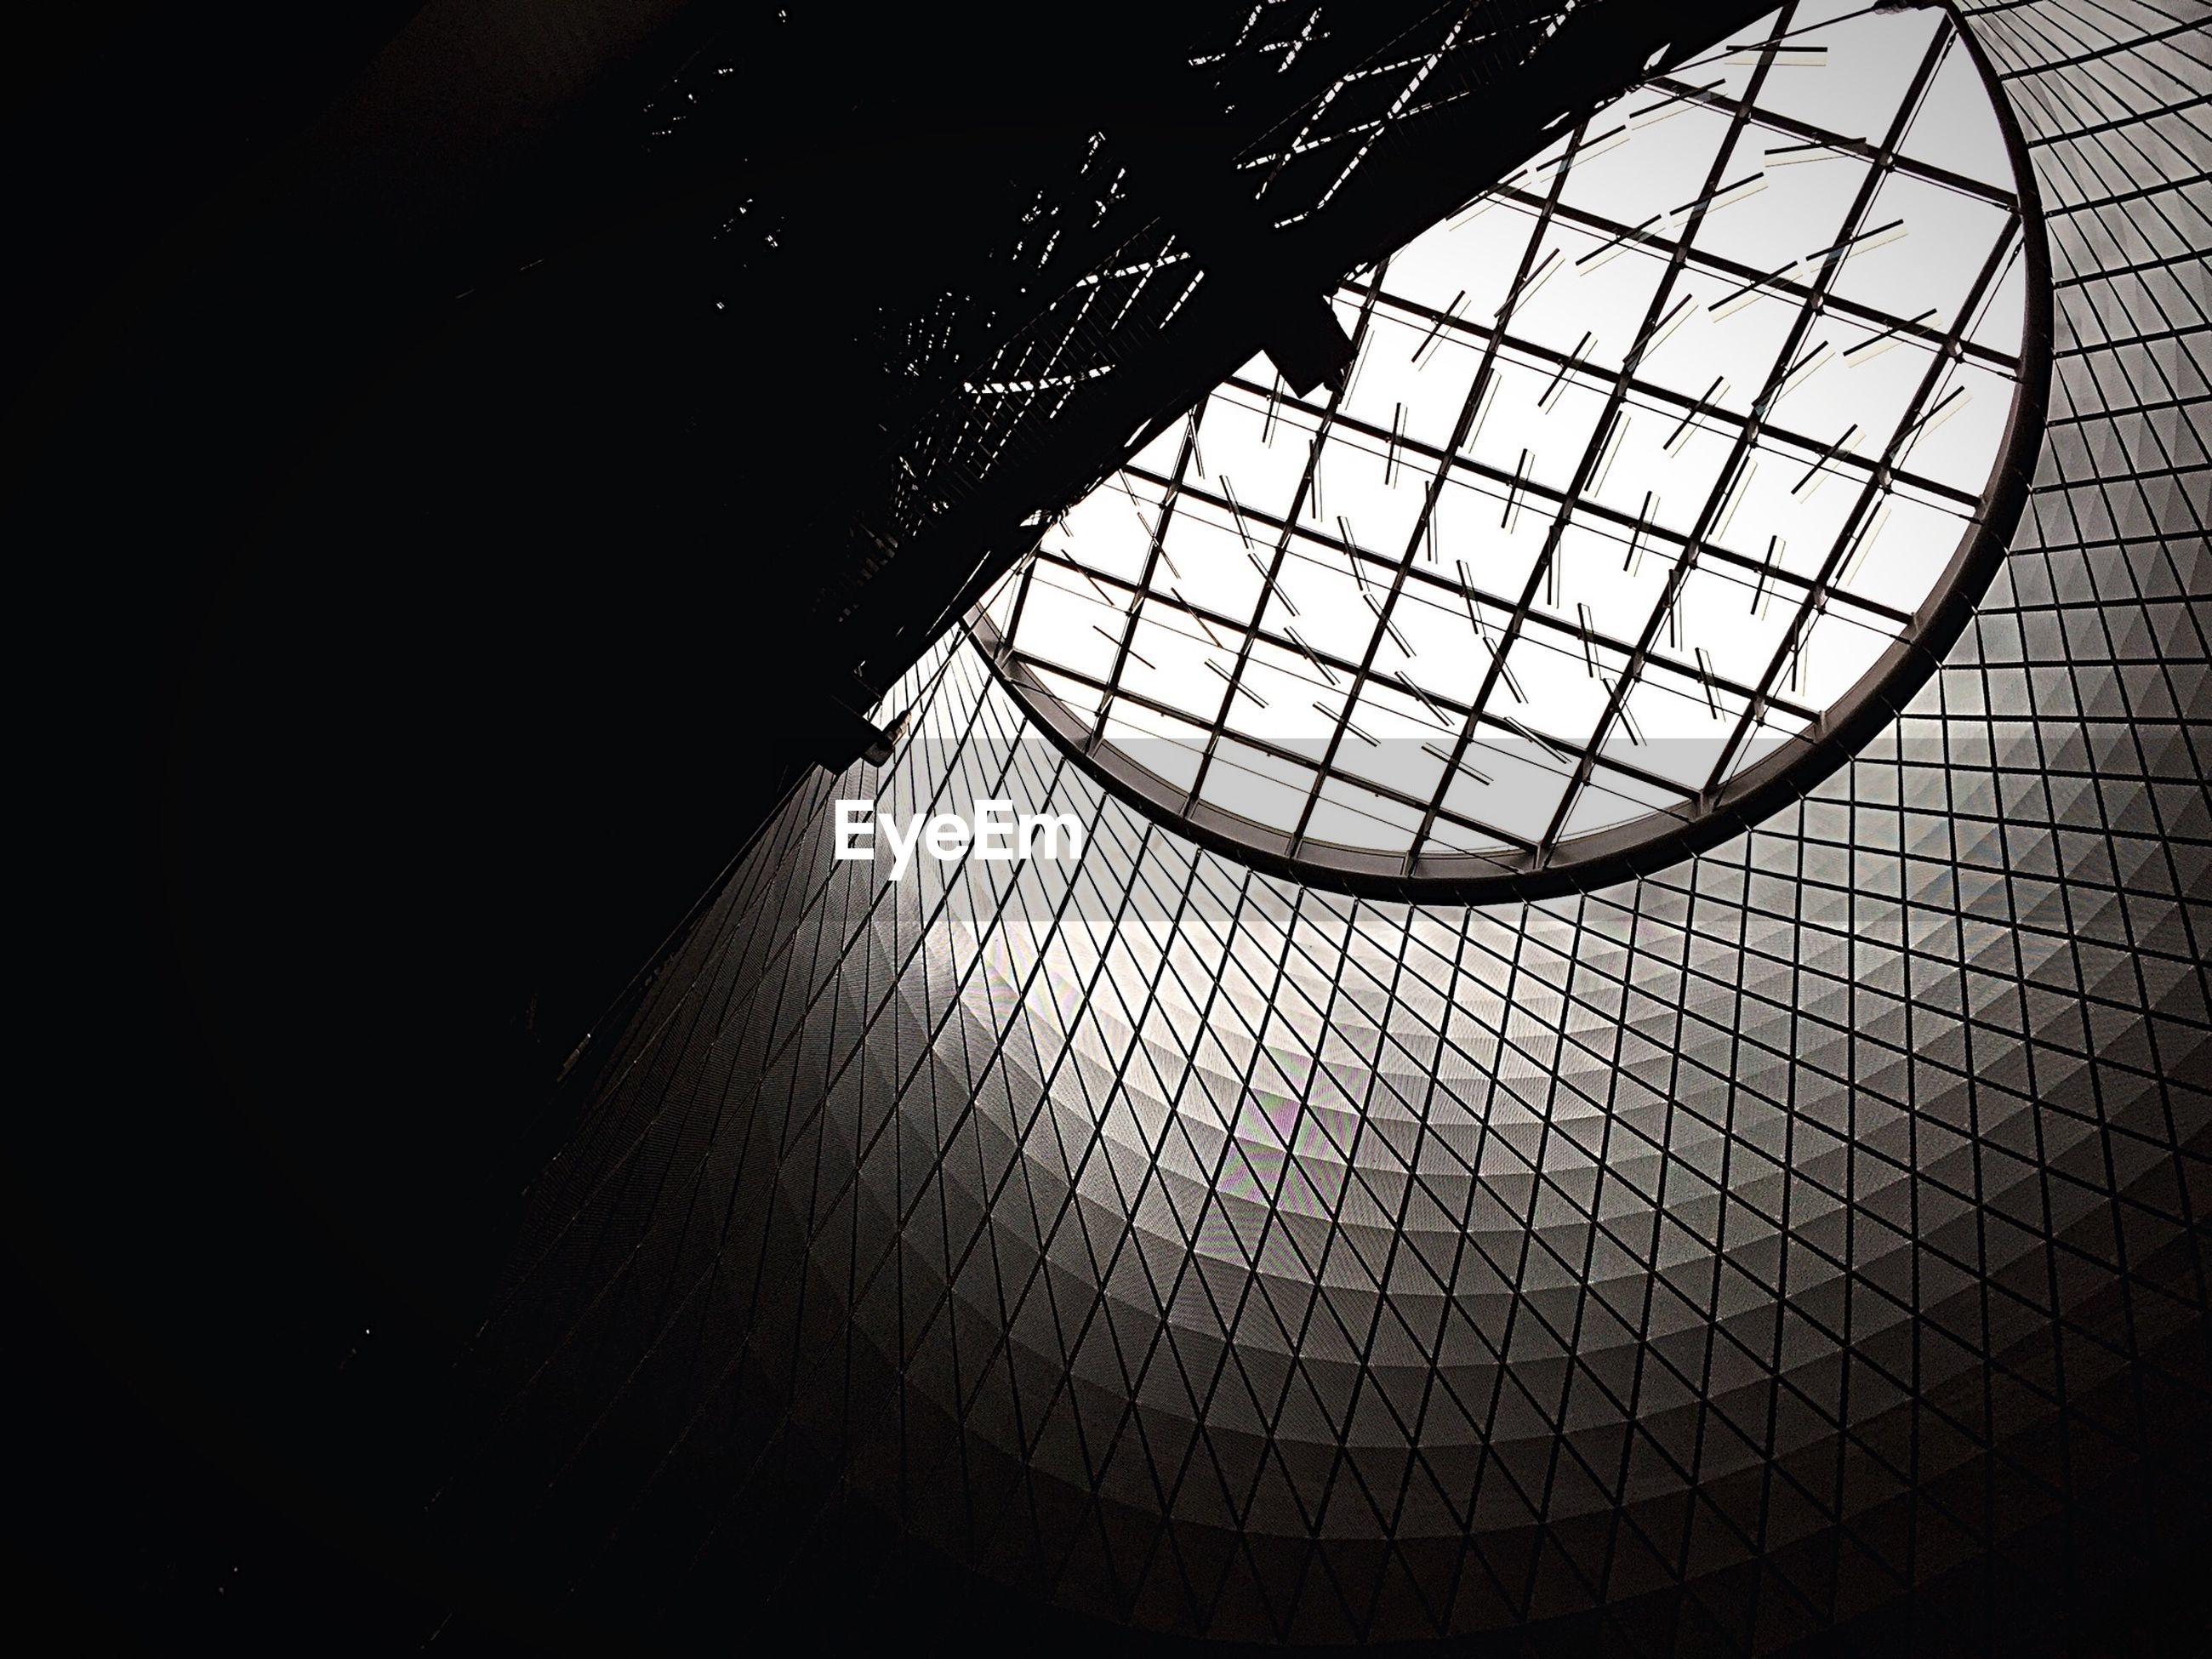 indoors, architecture, built structure, pattern, ceiling, window, low angle view, geometric shape, design, skylight, glass - material, building, wall - building feature, no people, architectural feature, metal, day, shadow, circle, sunlight